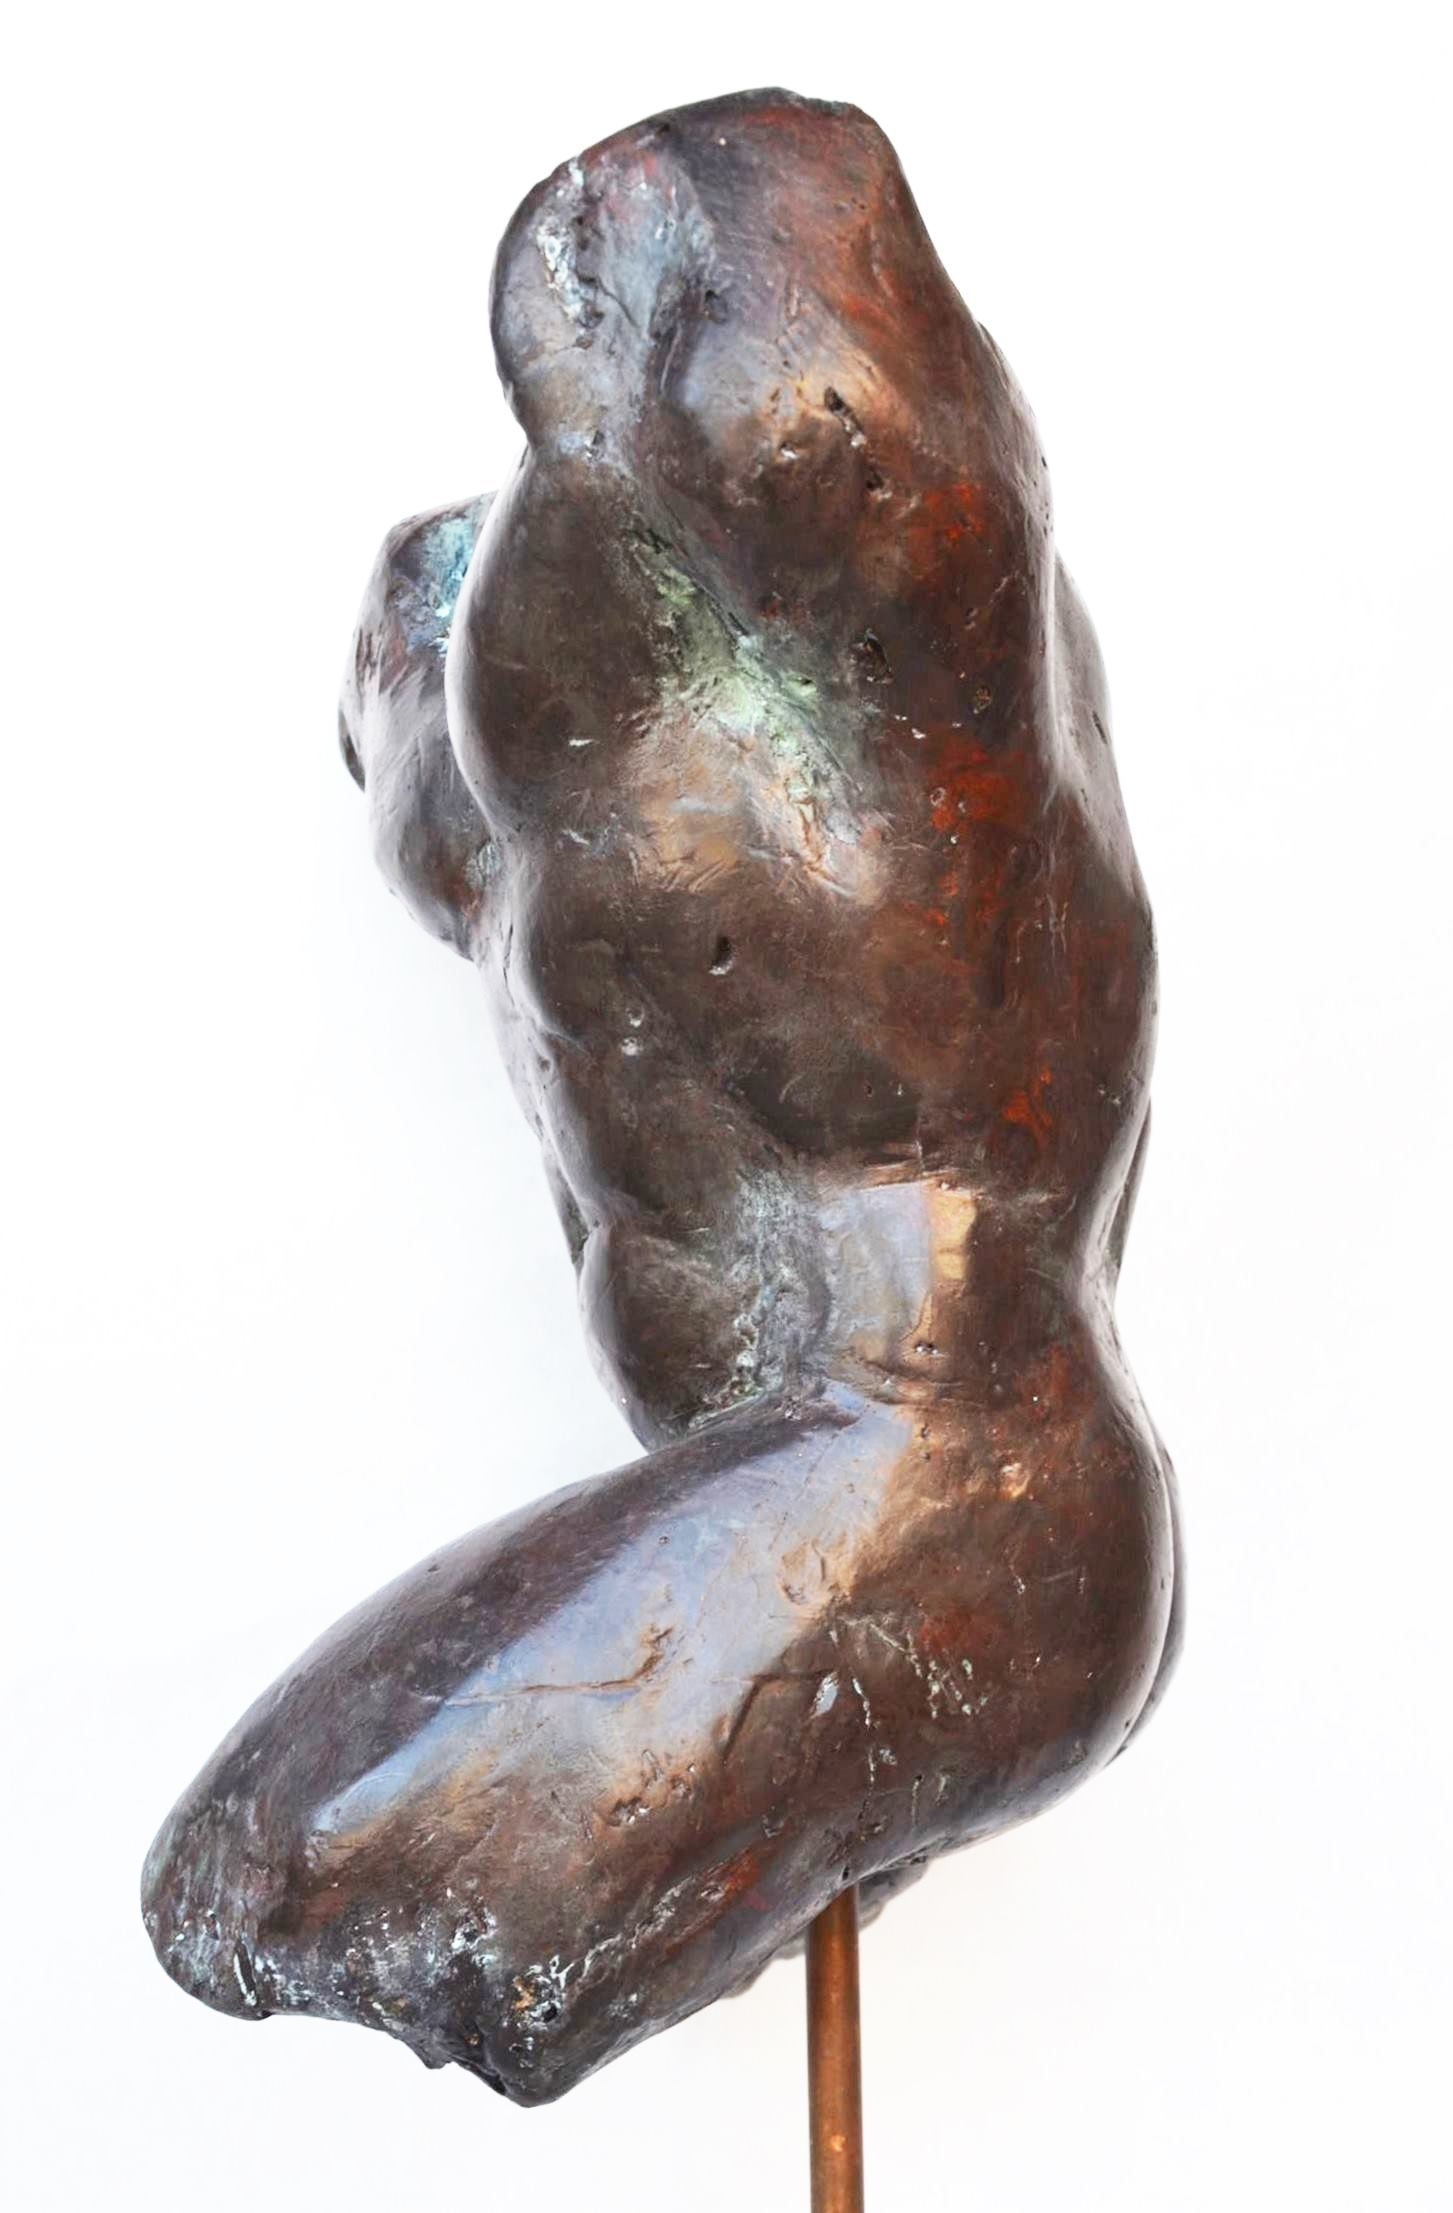 Impressionist man torso III,Yann Guillon,Sculpture, detail 1